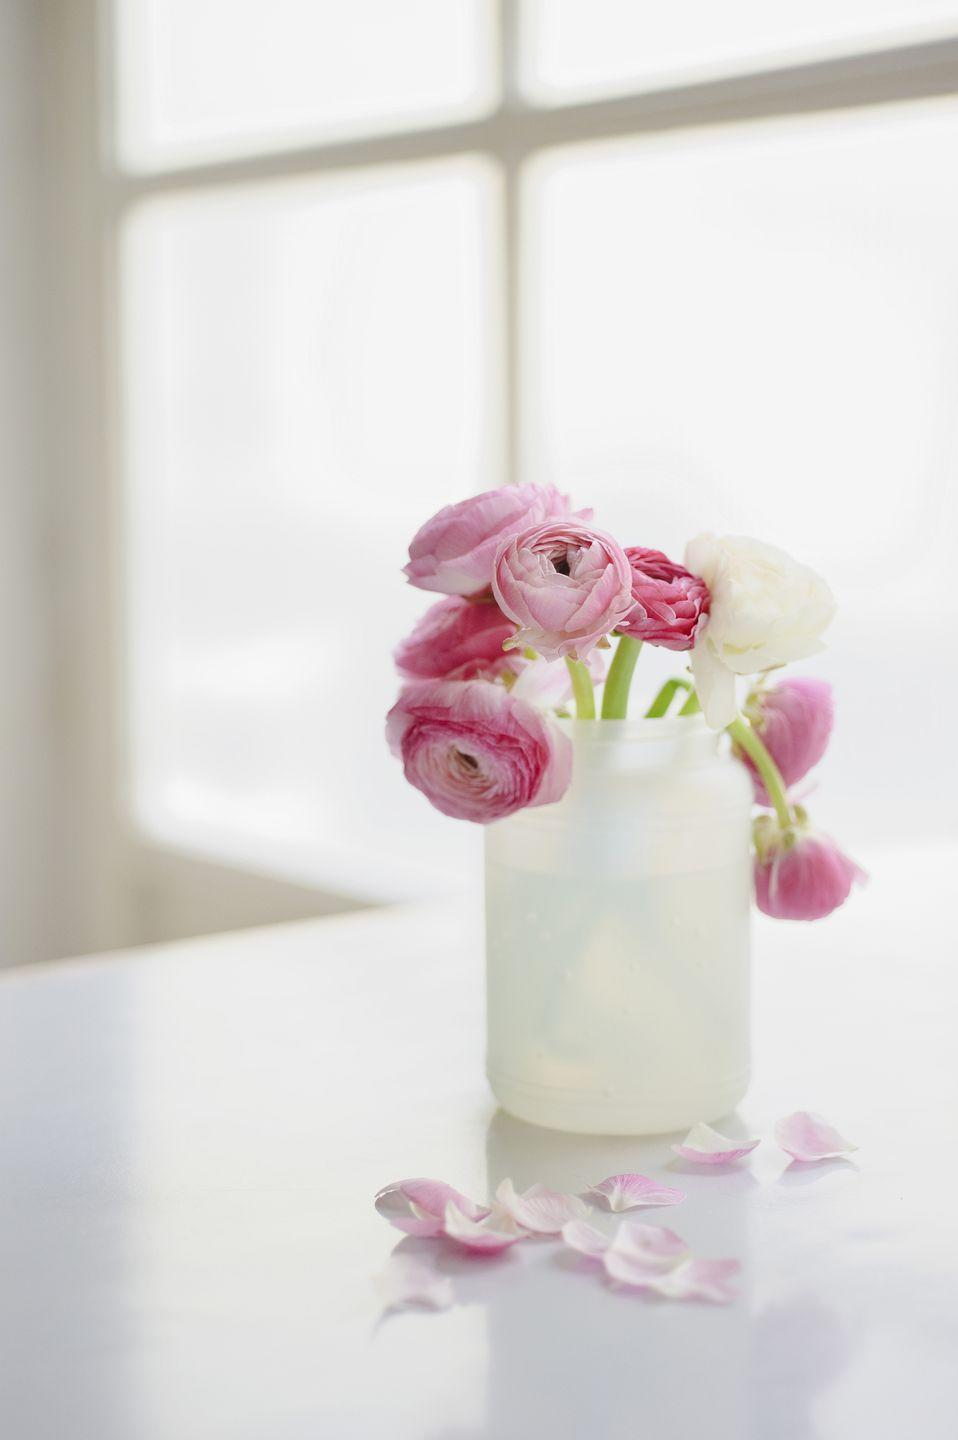 """<p>If you've tried everything from a <a href=""""https://www.countryliving.com/gardening/a35326/make-fresh-flowers-last-longer/"""" rel=""""nofollow noopener"""" target=""""_blank"""" data-ylk=""""slk:spritz of hairspray"""" class=""""link rapid-noclick-resp"""">spritz of hairspray</a> to <a href=""""https://www.countryliving.com/gardening/a37775/cut-flower-food-recipe/"""" rel=""""nofollow noopener"""" target=""""_blank"""" data-ylk=""""slk:this recipe"""" class=""""link rapid-noclick-resp"""">this recipe</a> to make your petals last longer, but they've finally met their maker, to the compost pile they go. Same goes for dead plants. No green thumb? Try a <a href=""""https://www.countryliving.com/gardening/garden-ideas/advice/g1341/indoor-gardening/"""" rel=""""nofollow noopener"""" target=""""_blank"""" data-ylk=""""slk:houseplant"""" class=""""link rapid-noclick-resp"""">houseplant</a> that's harder to kill.</p>"""